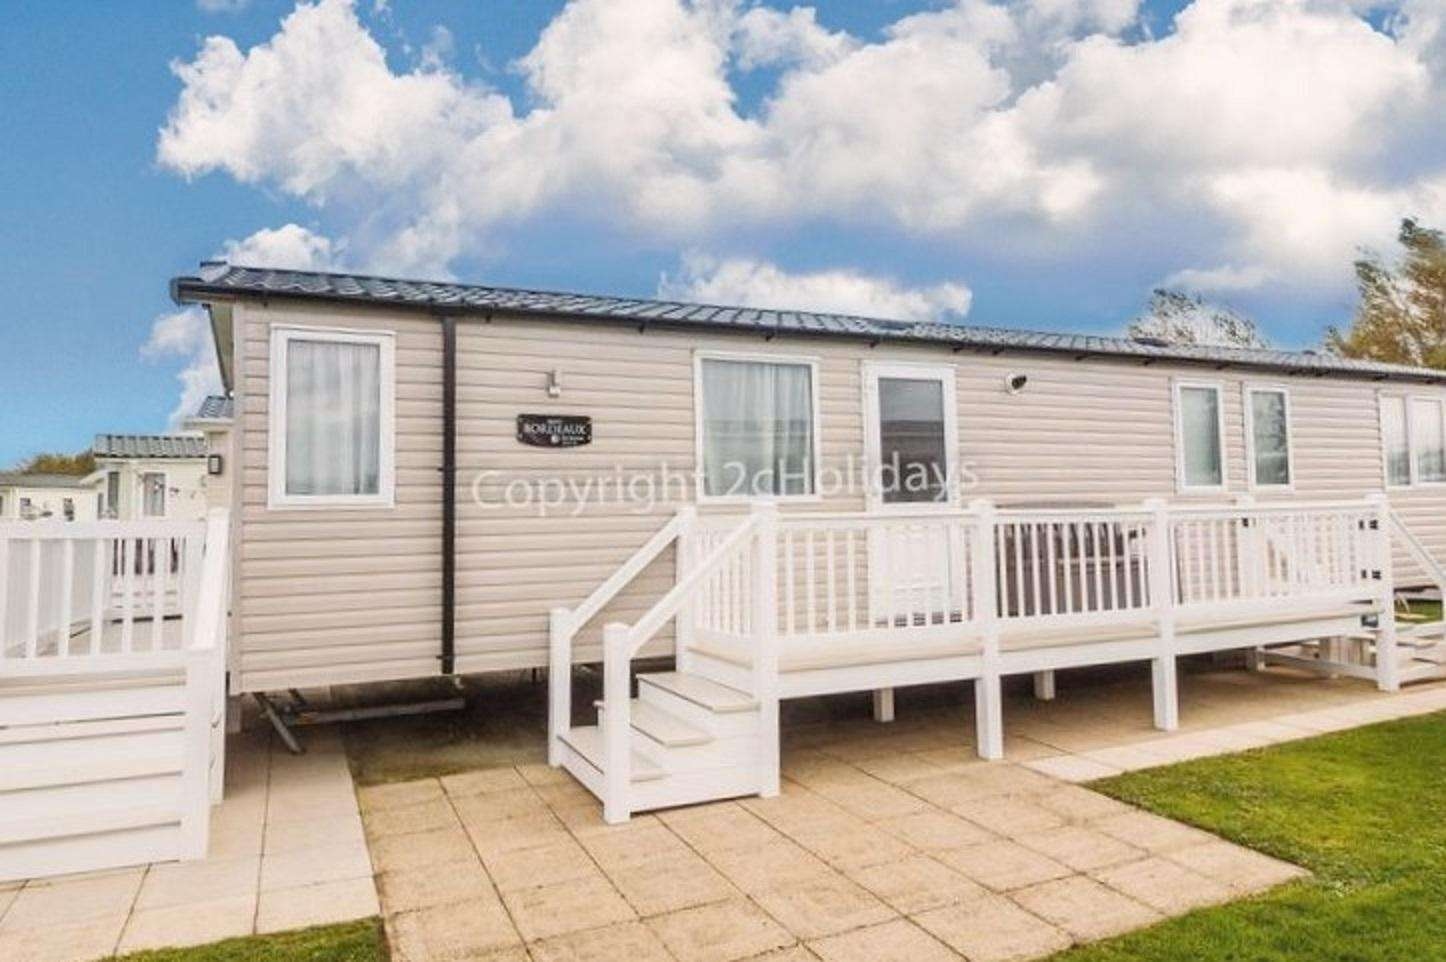 8 berth accommodation at Hopton Holiday Village